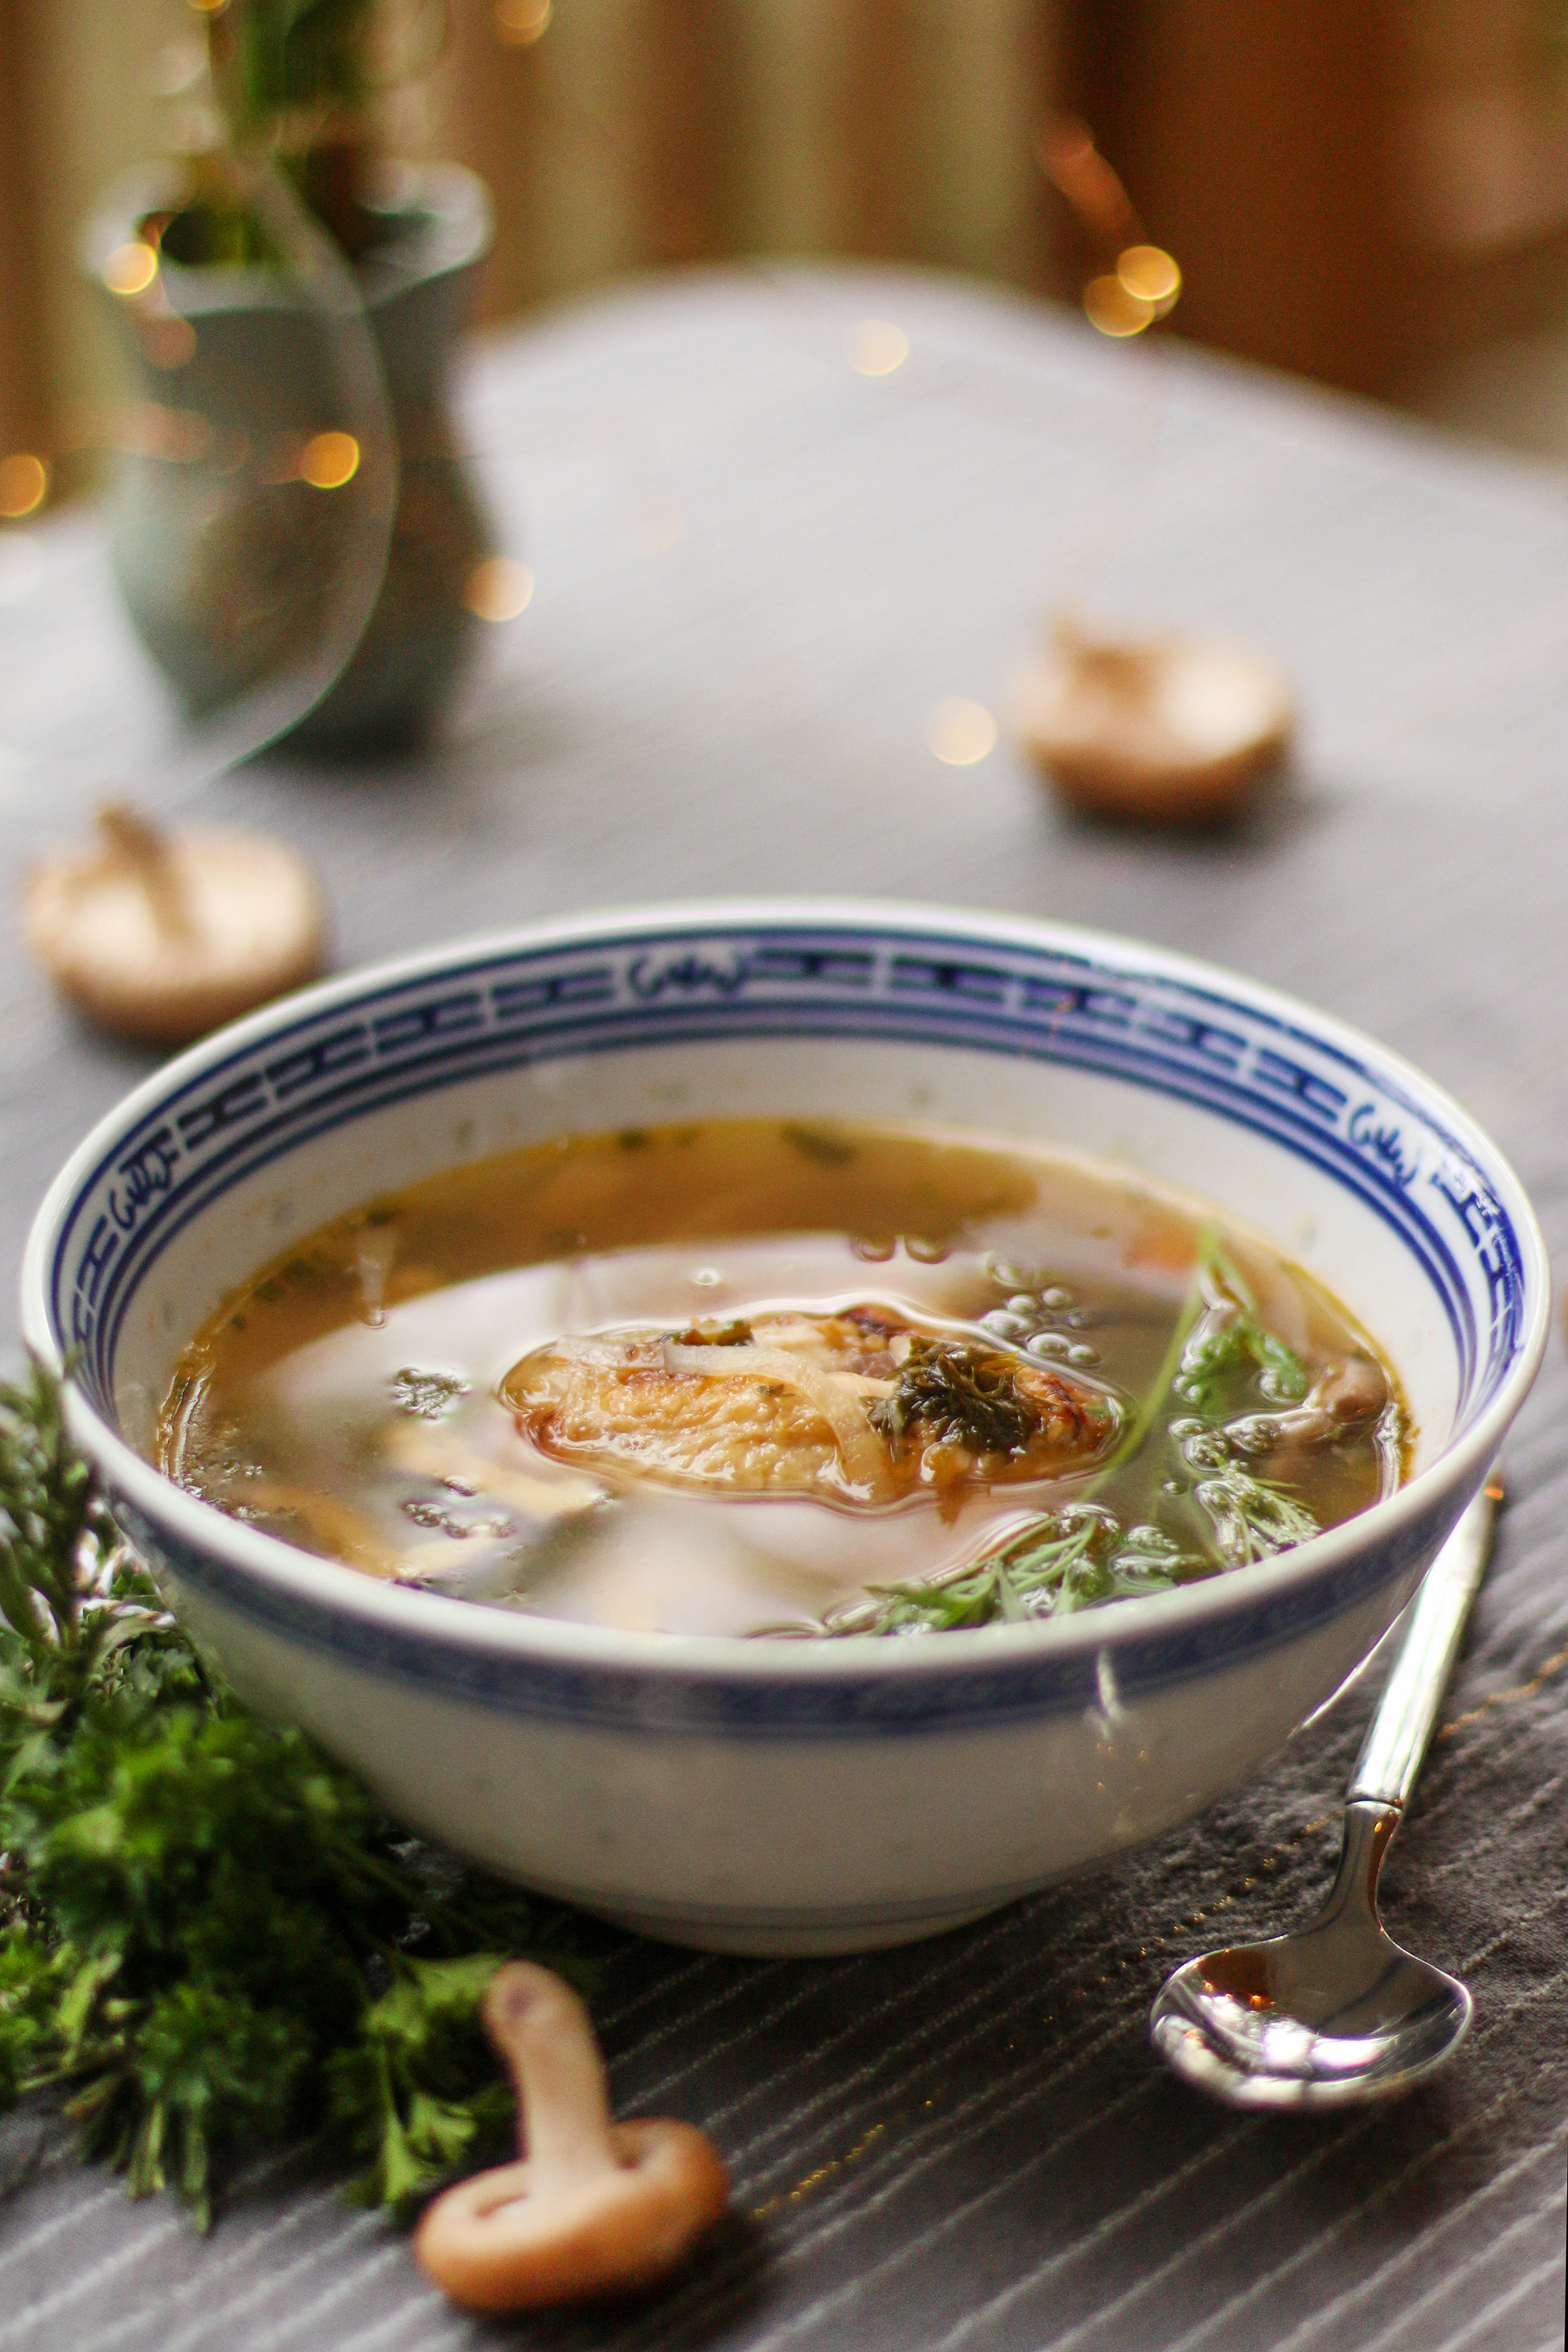 chicken-and-vegetale-soup-in-asian-bowl-surrounded-by-fresh-ingredients